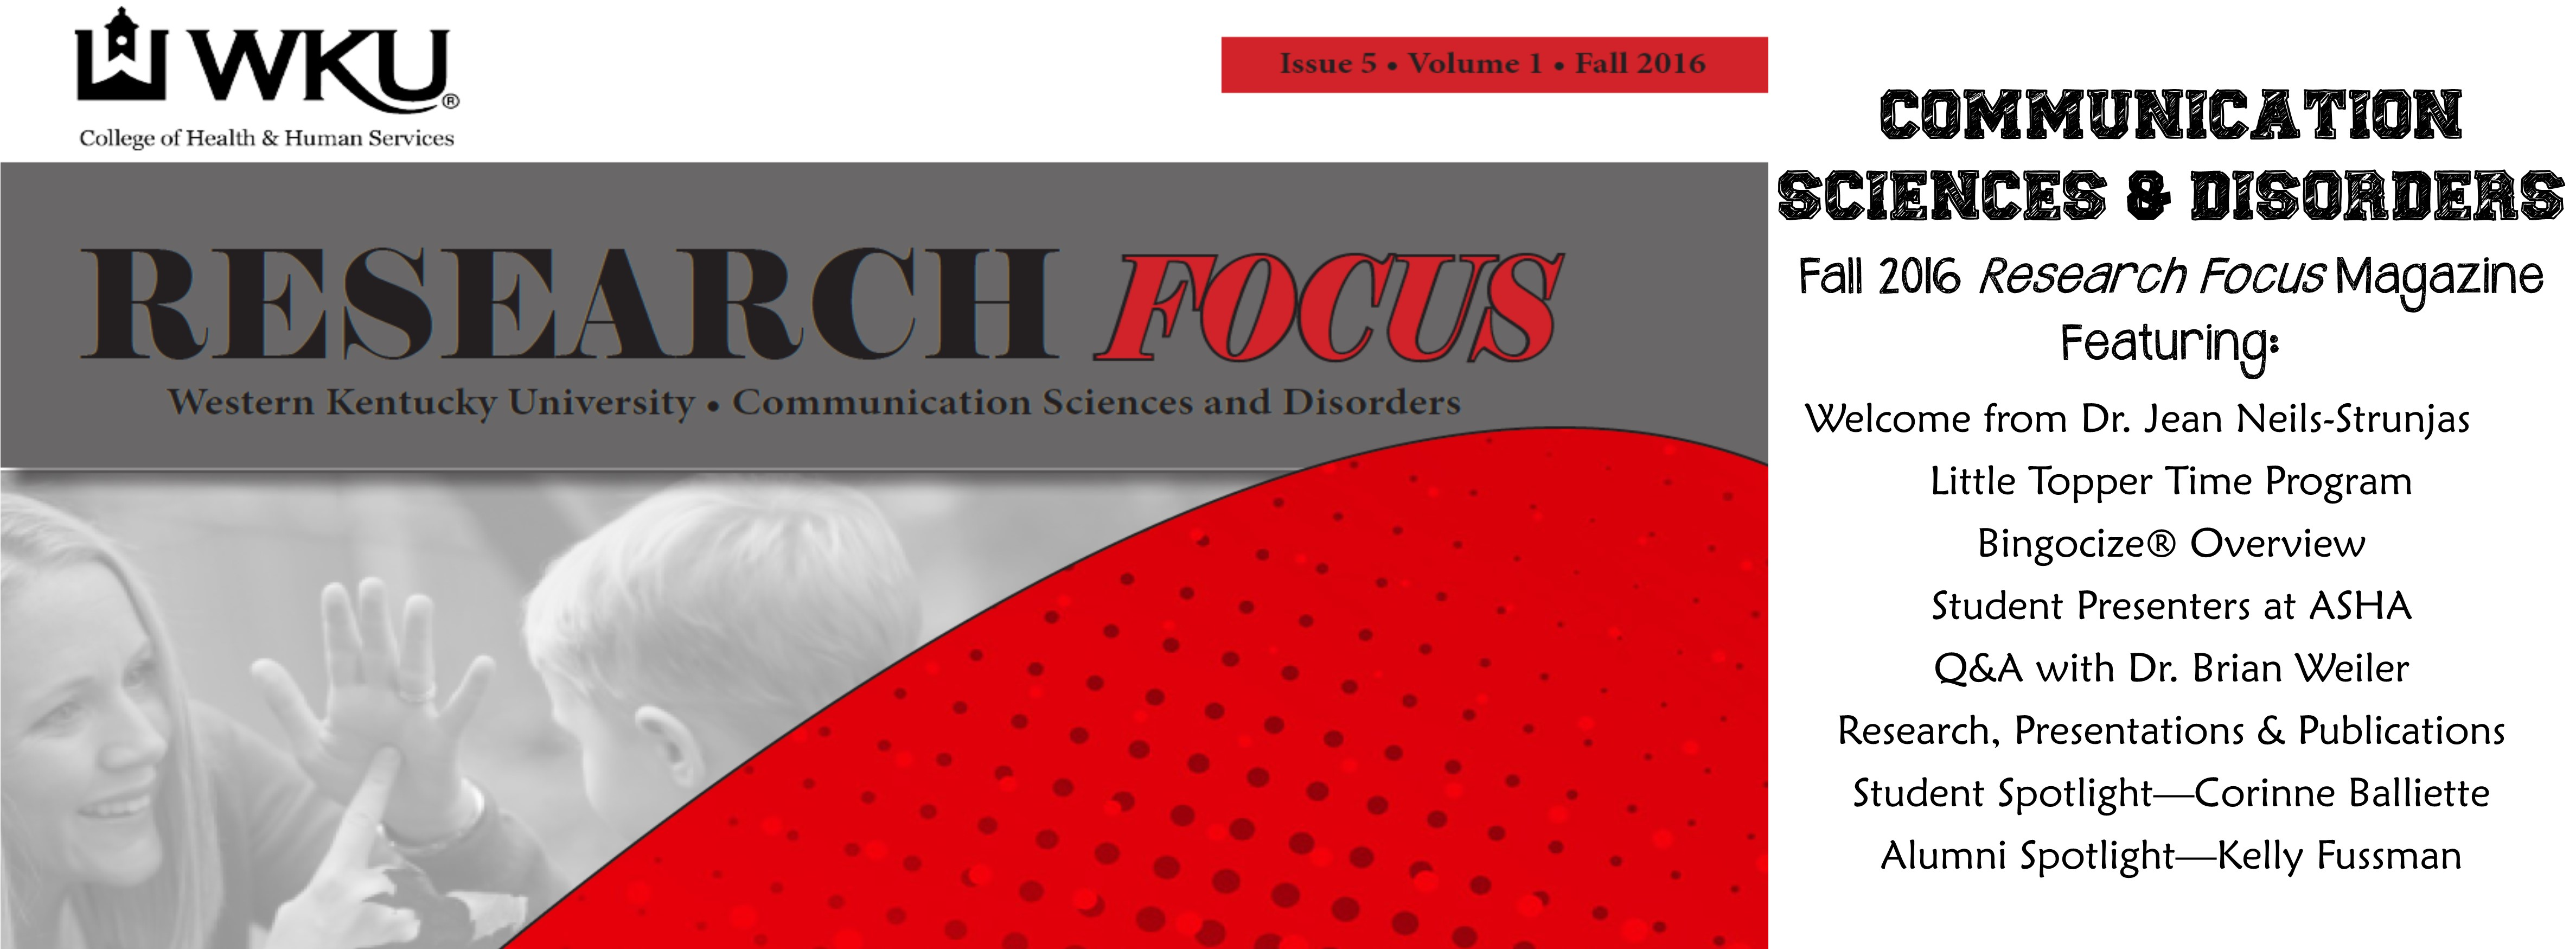 Fall 2016 Research Focus Magazine